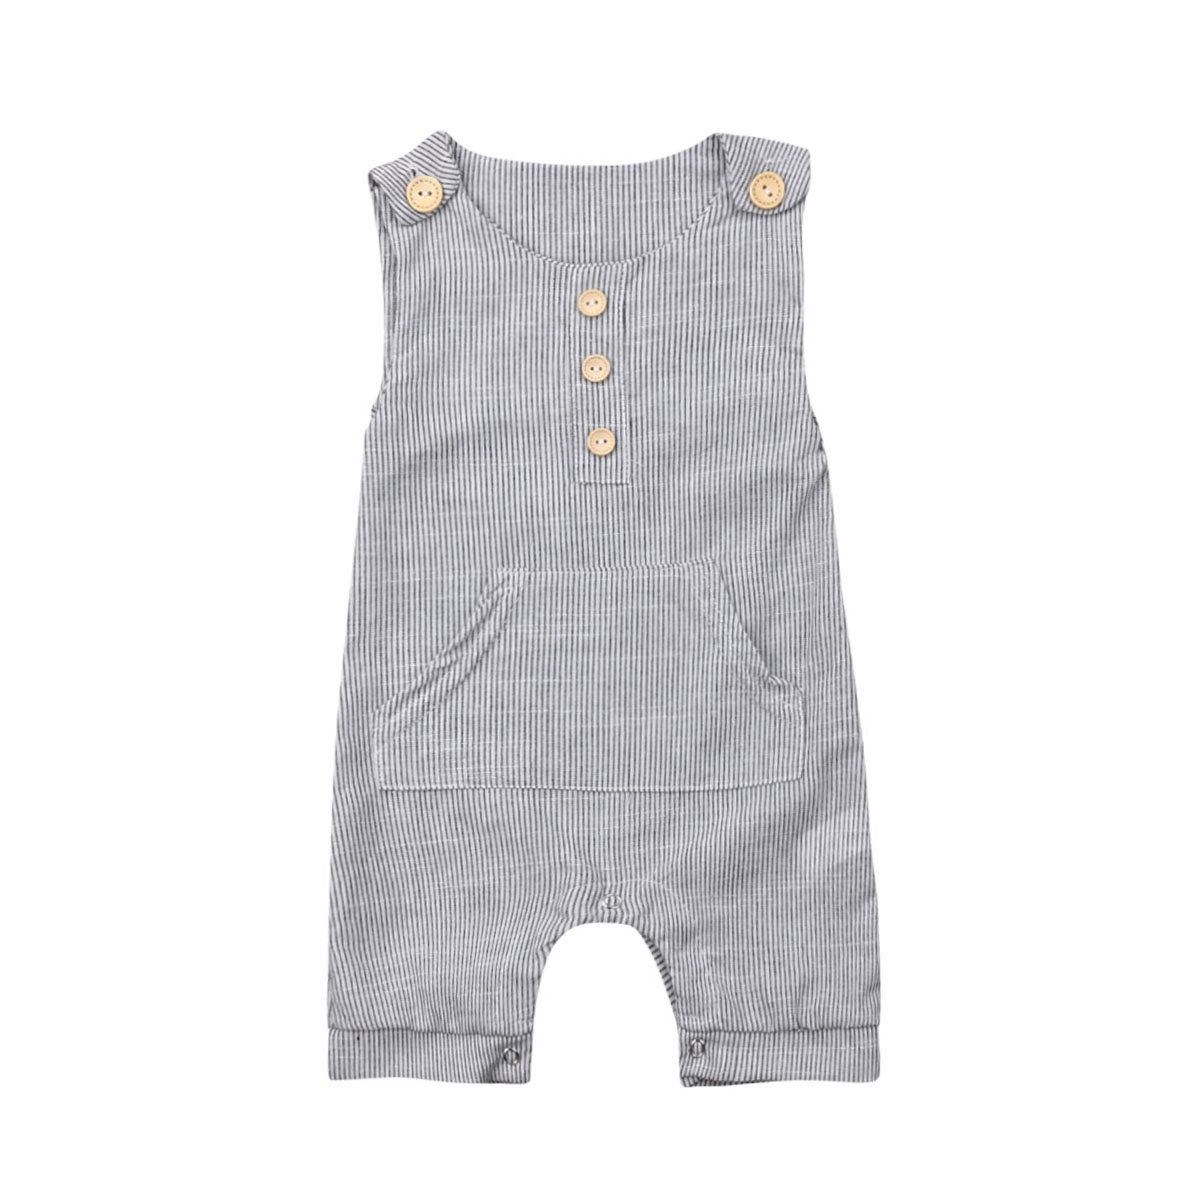 2019 Newborn Baby Boys   Romper   Pinstripe Jumpsuit Casual Sleeveless Playsuit Babygrow Outfits Clothes 0 to 18M